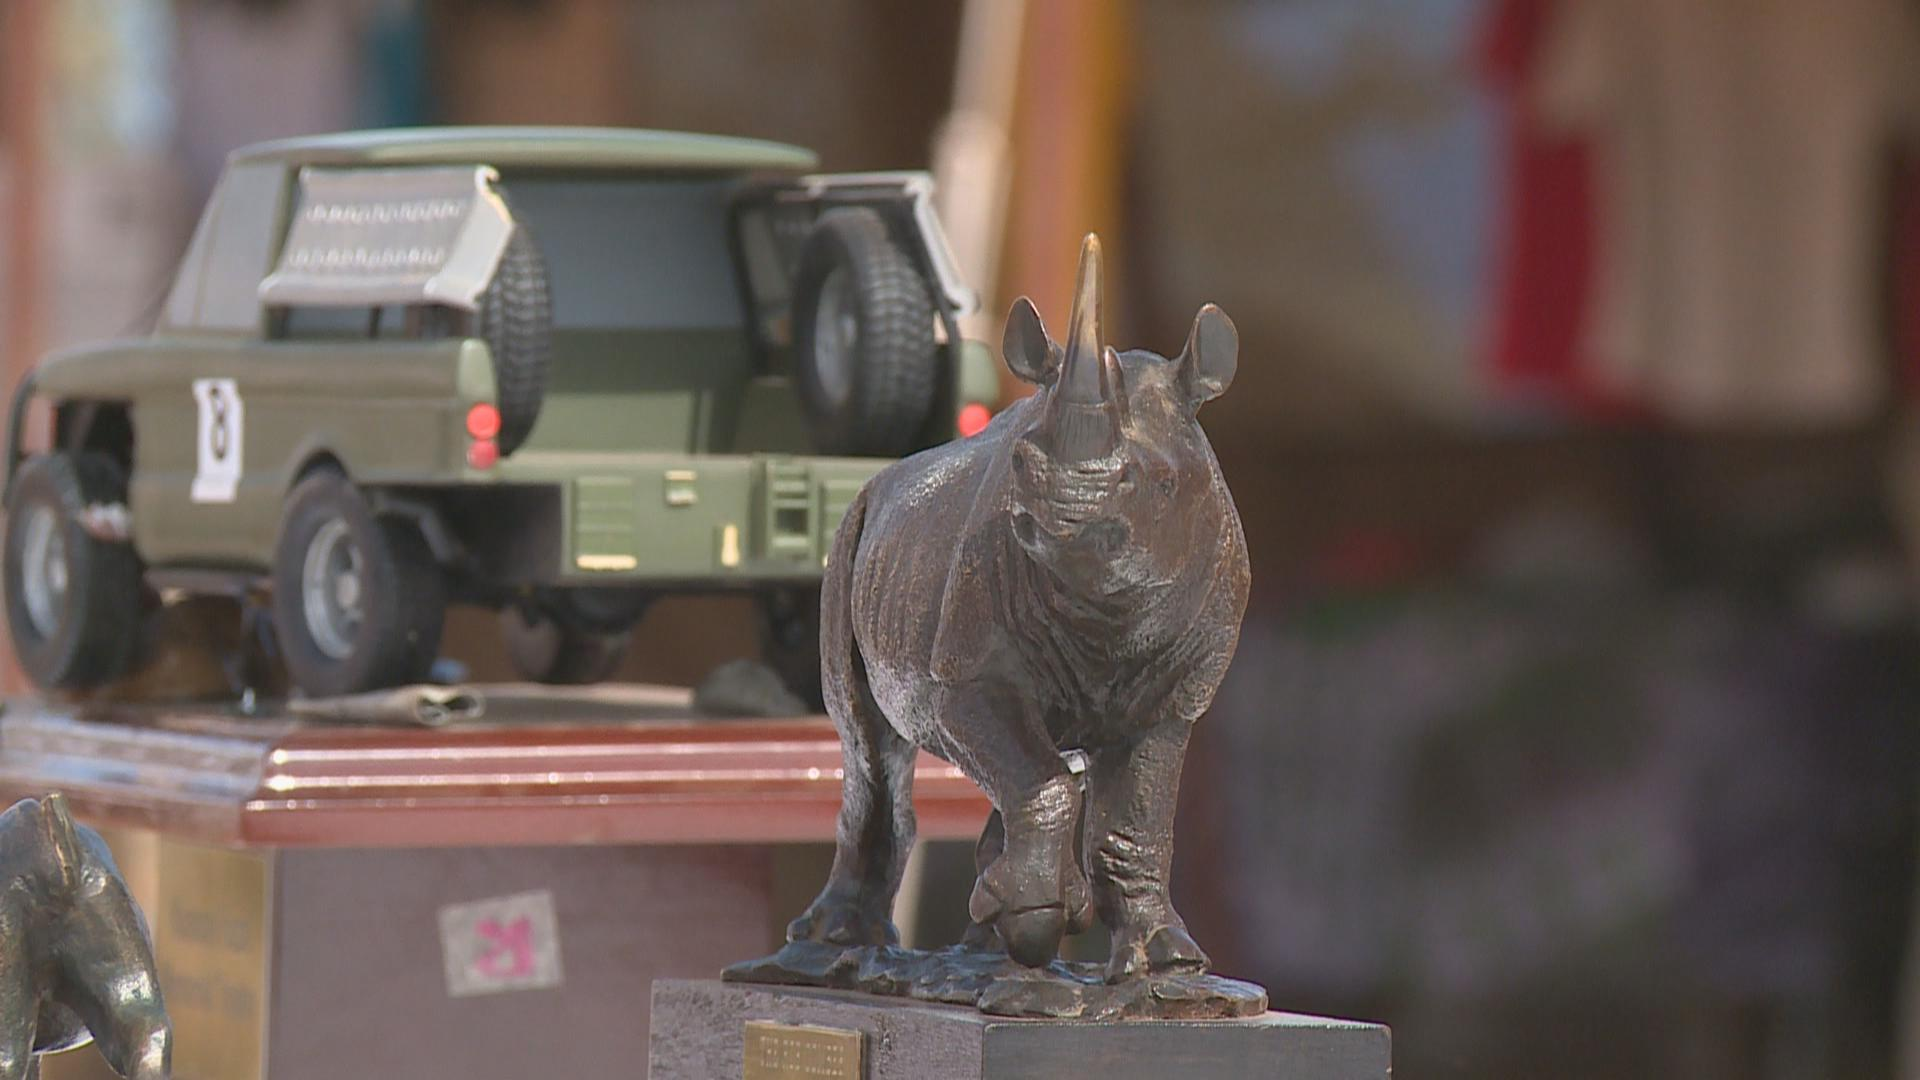 A trophy of a rhino and race car.